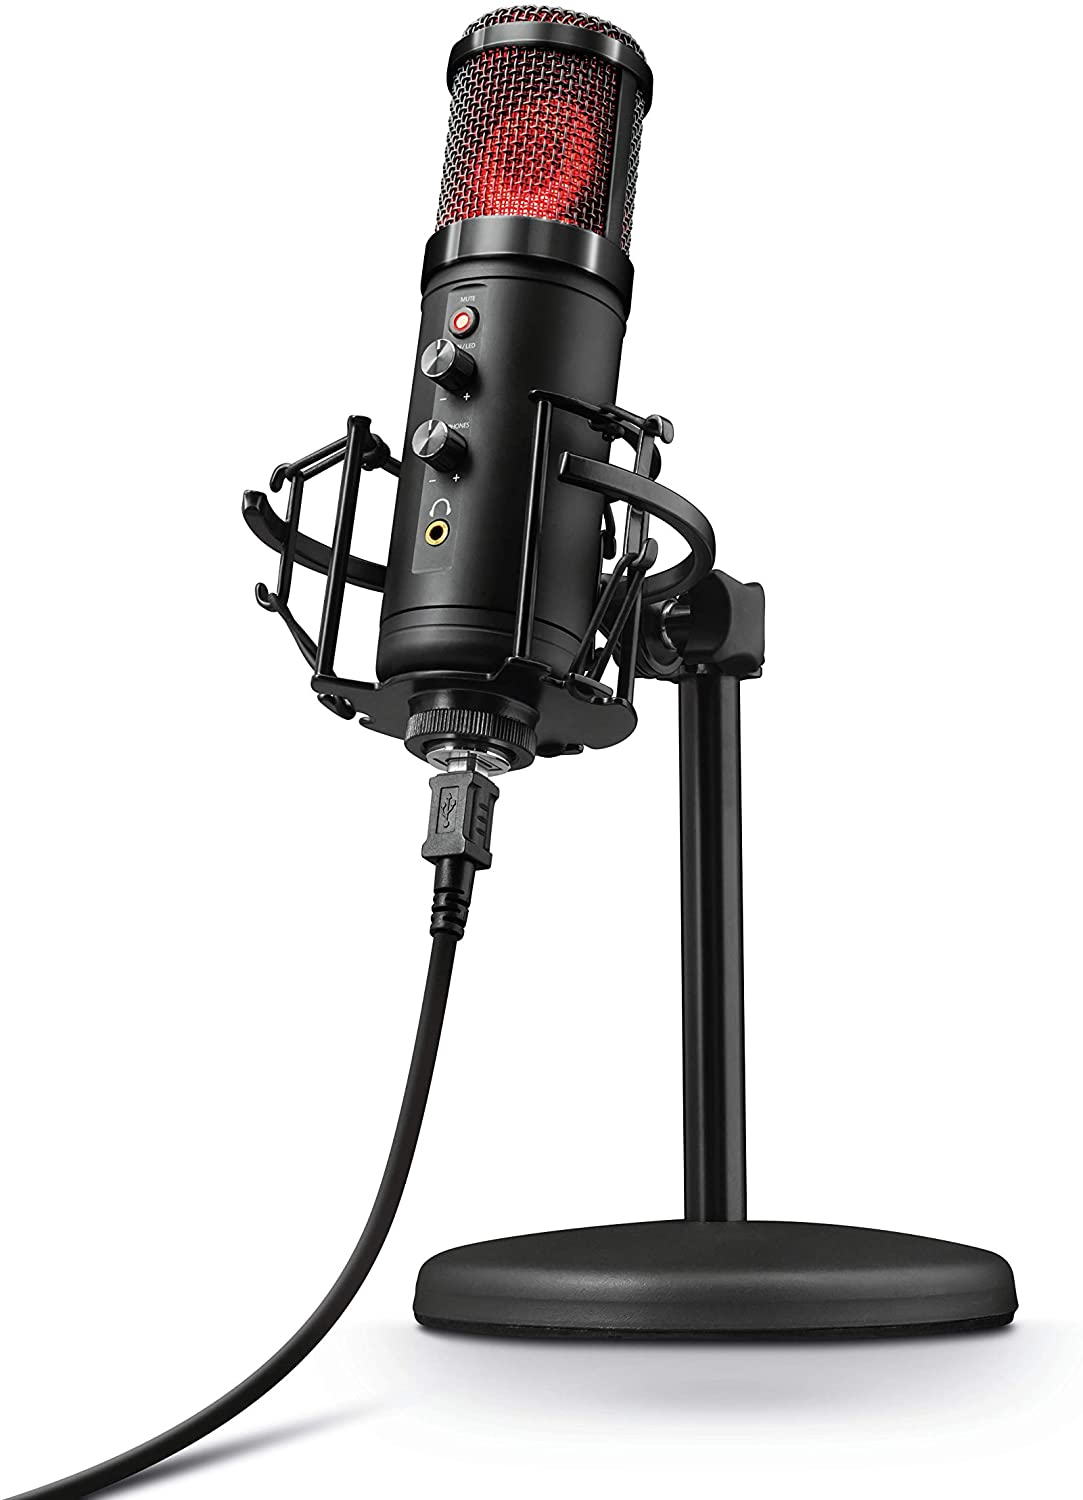 4-In-1 Streaming Microphone - smrt-life.com